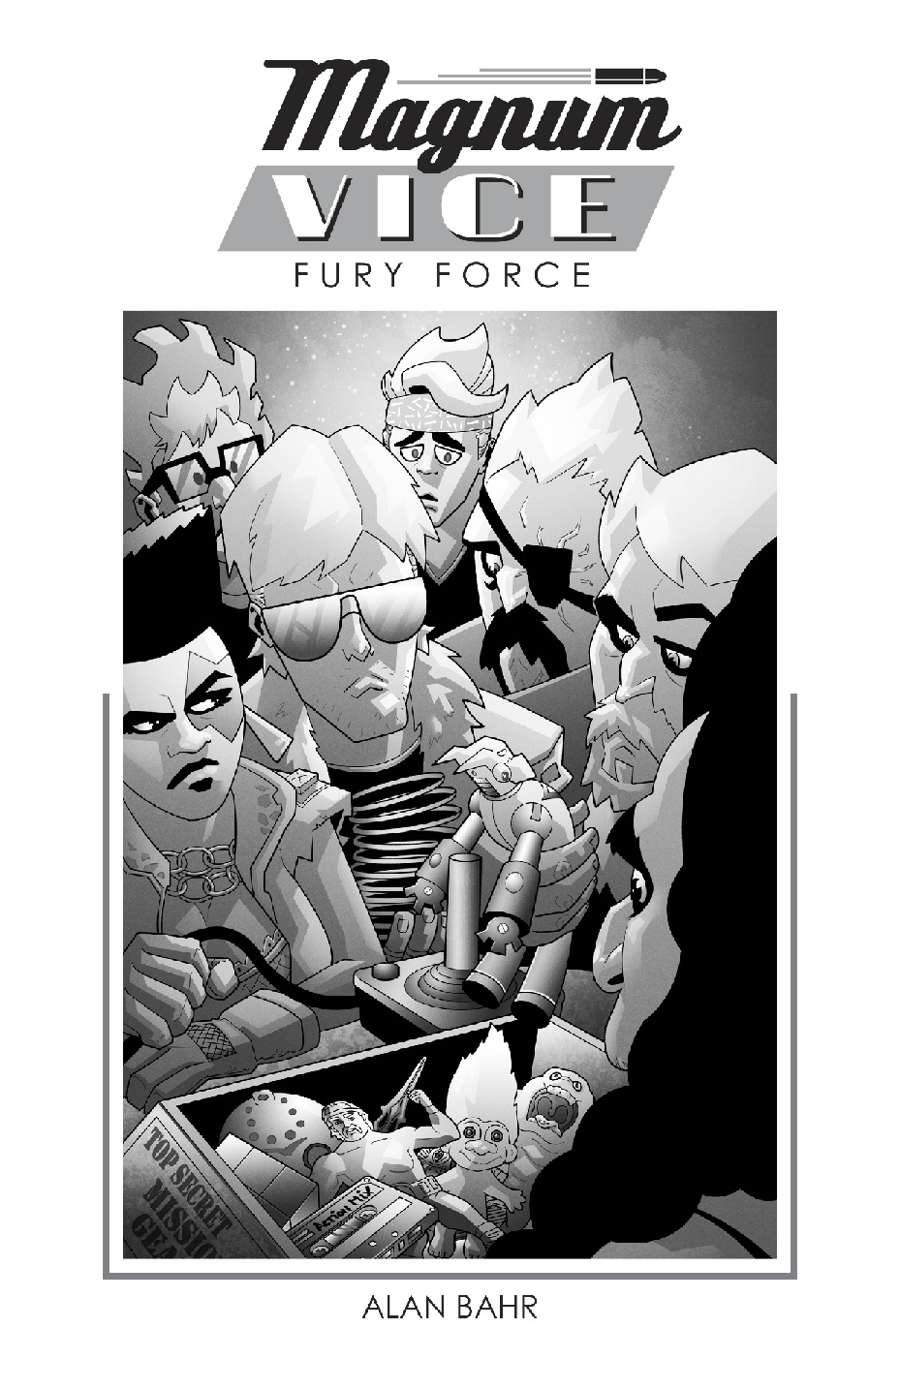 MAGNUM VICE: FURY FORCE - Gallant Knight Games, as Copy Editor